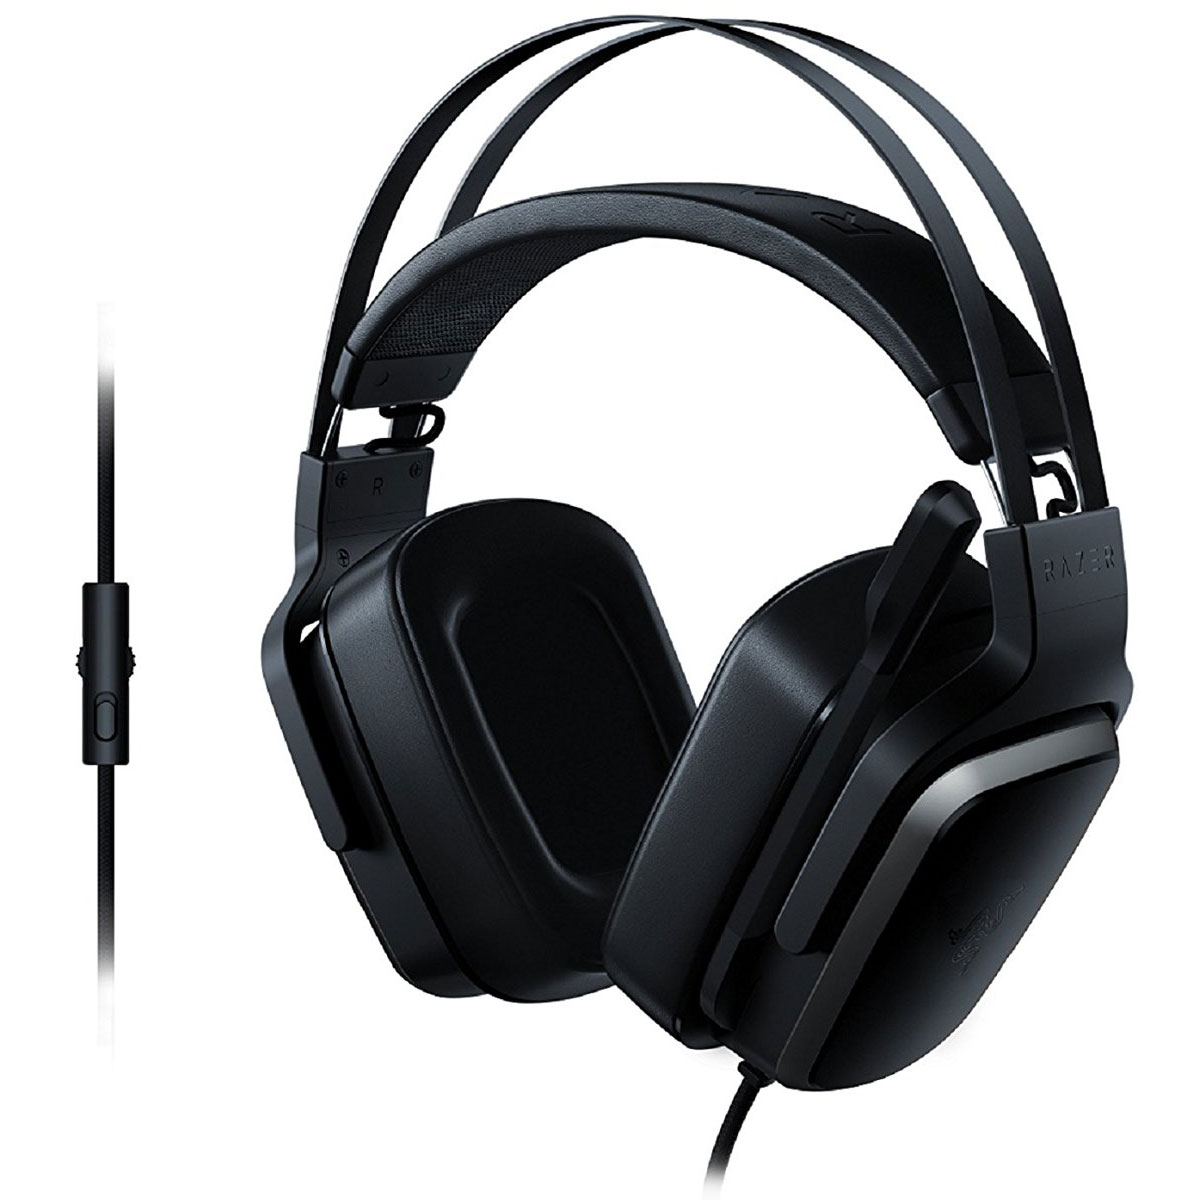 razer tiamat 2 2 v2 7 1 surround noir micro casque. Black Bedroom Furniture Sets. Home Design Ideas